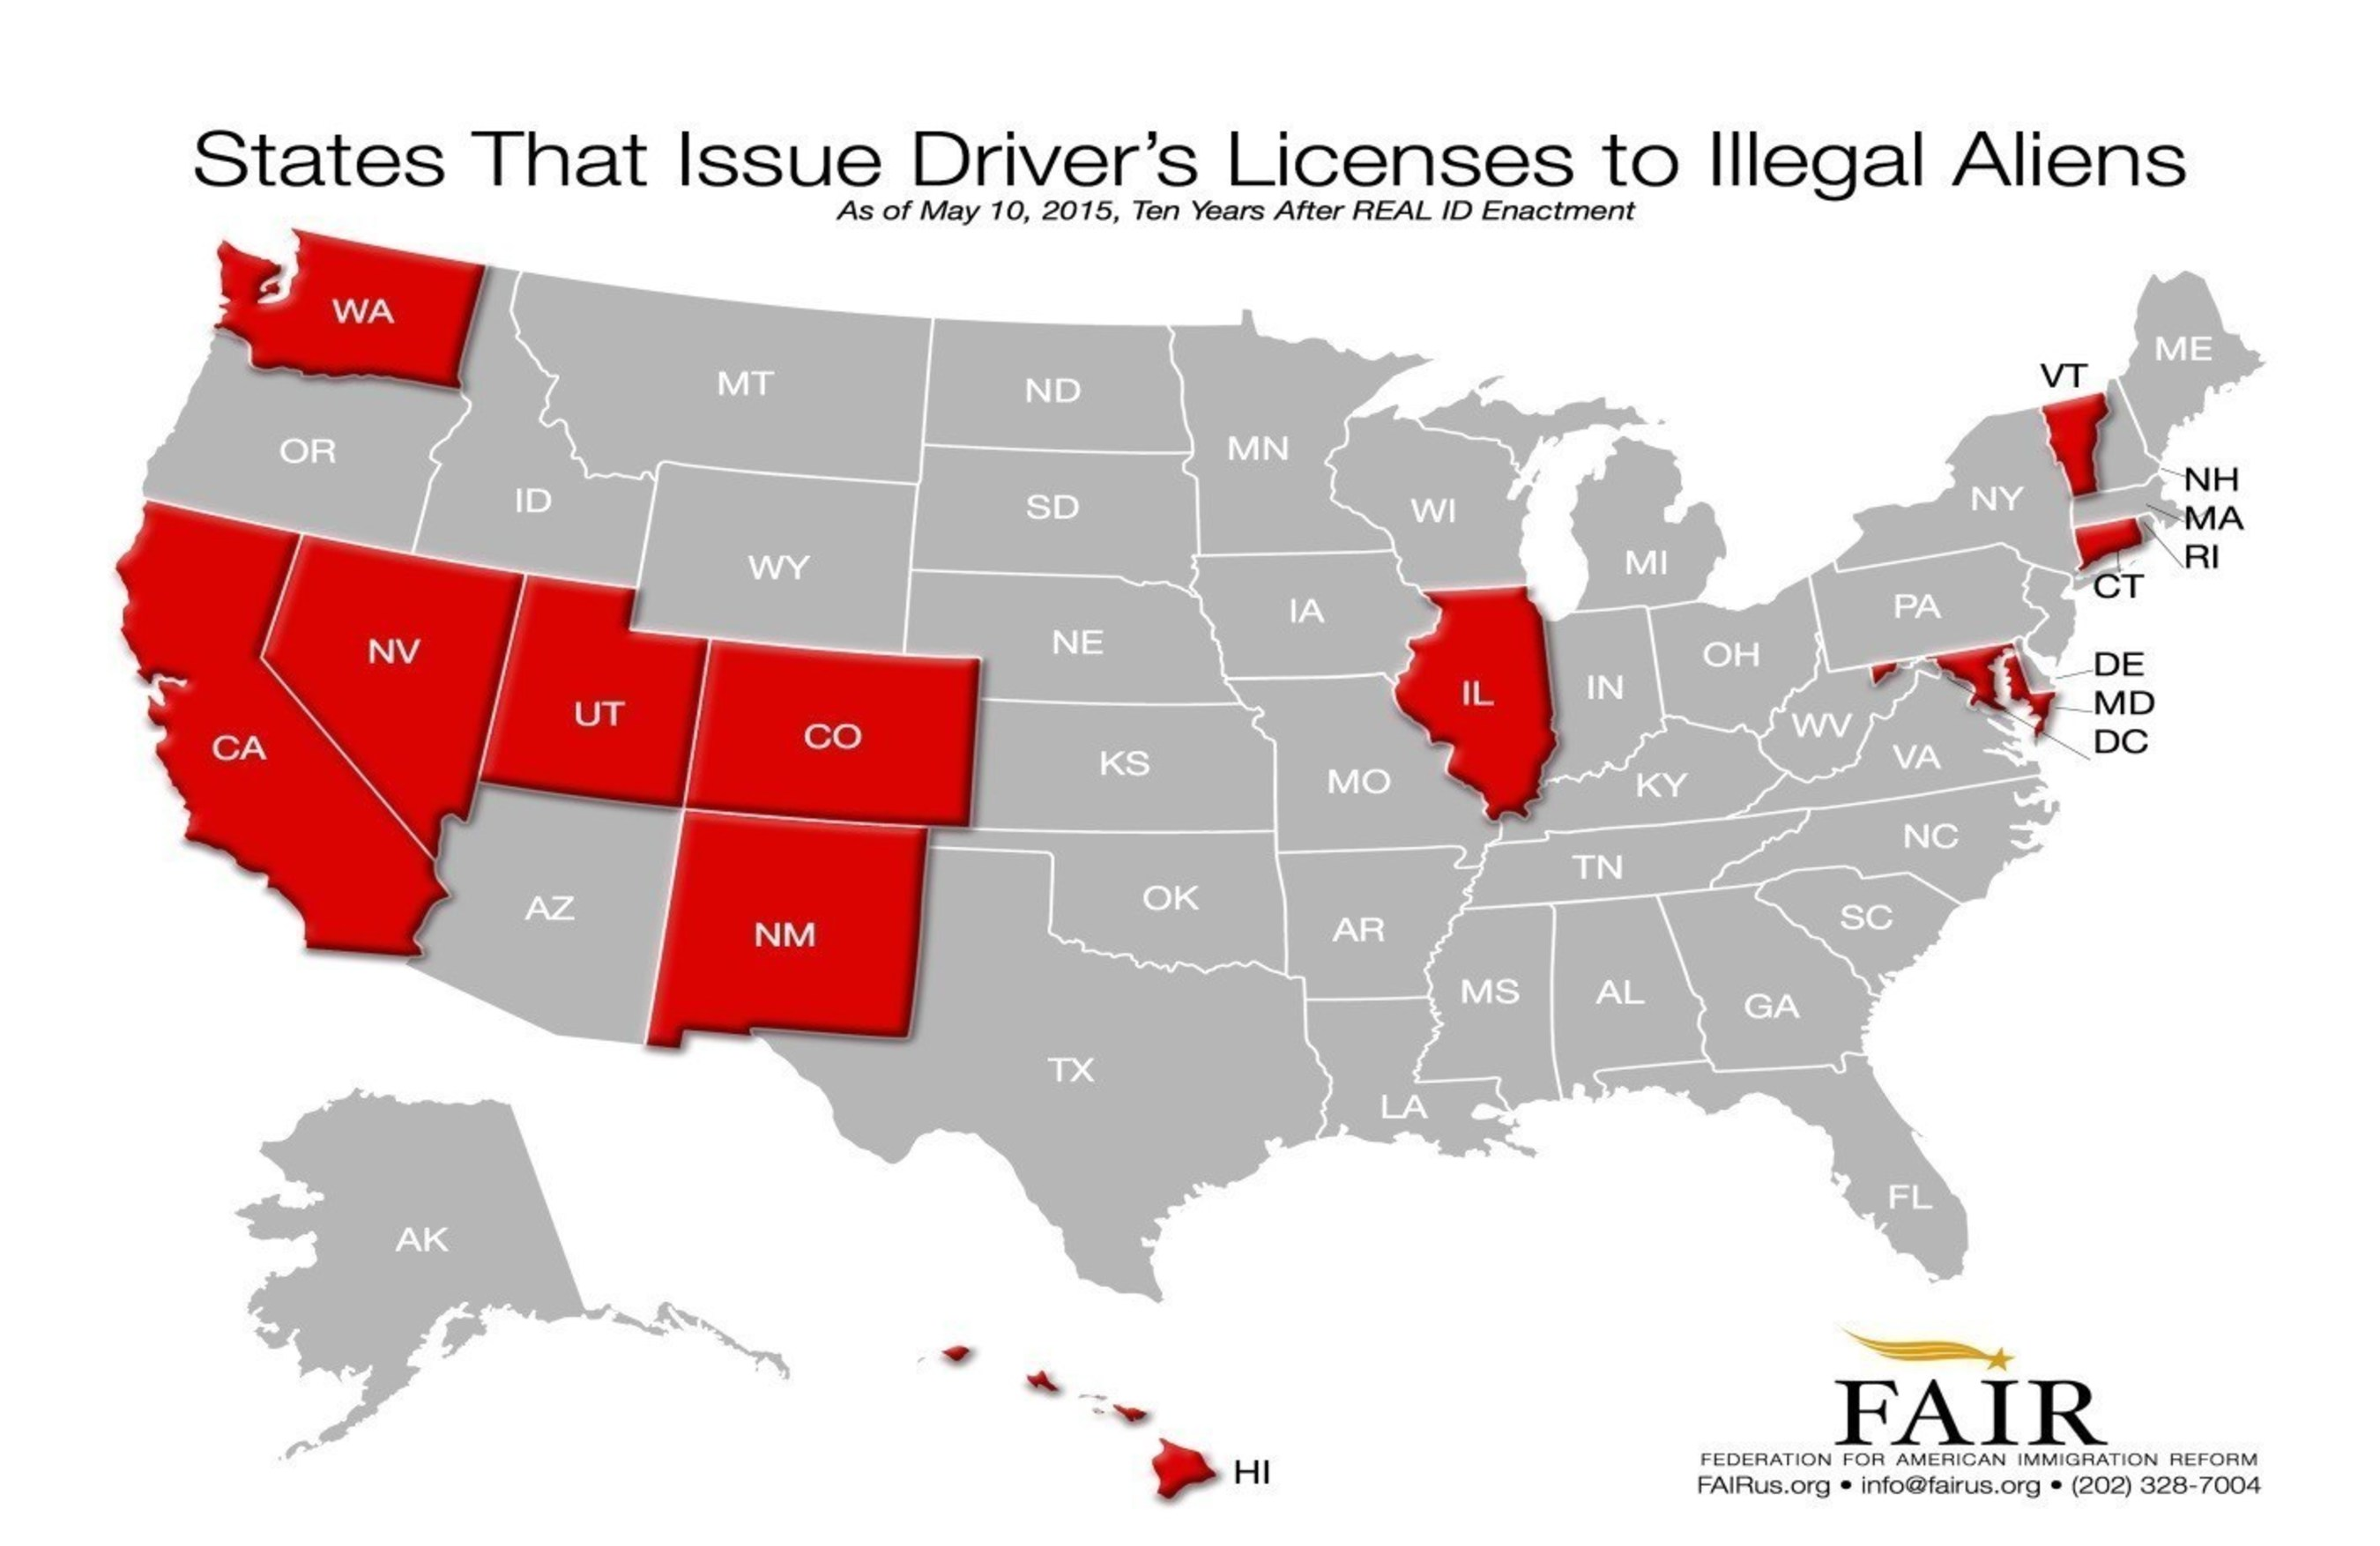 States That Issue Driver's Licenses to Illegal Aliens. FAIRus.org